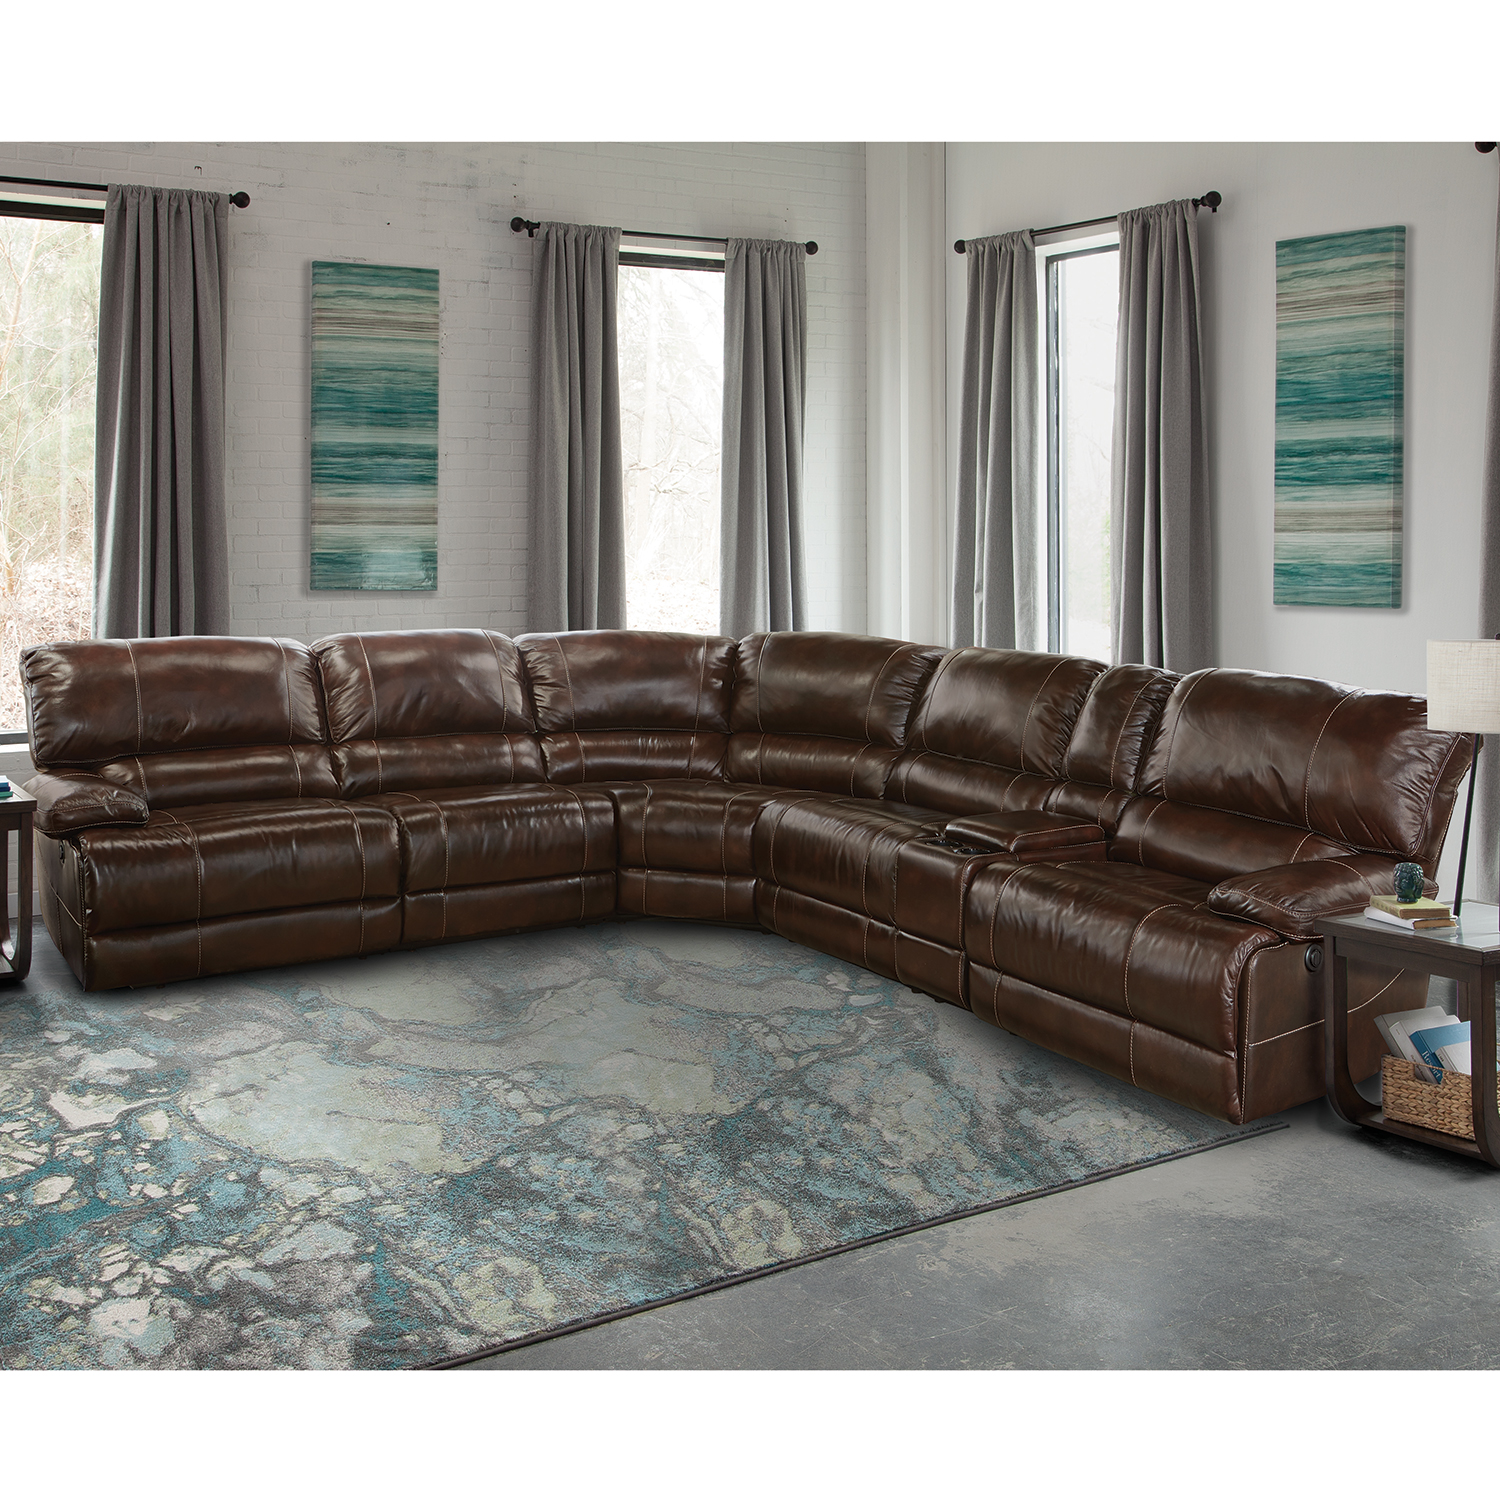 Parker House MSHA 6PC SECTIONAL Shaw 6 Piece Sectional Sofa in